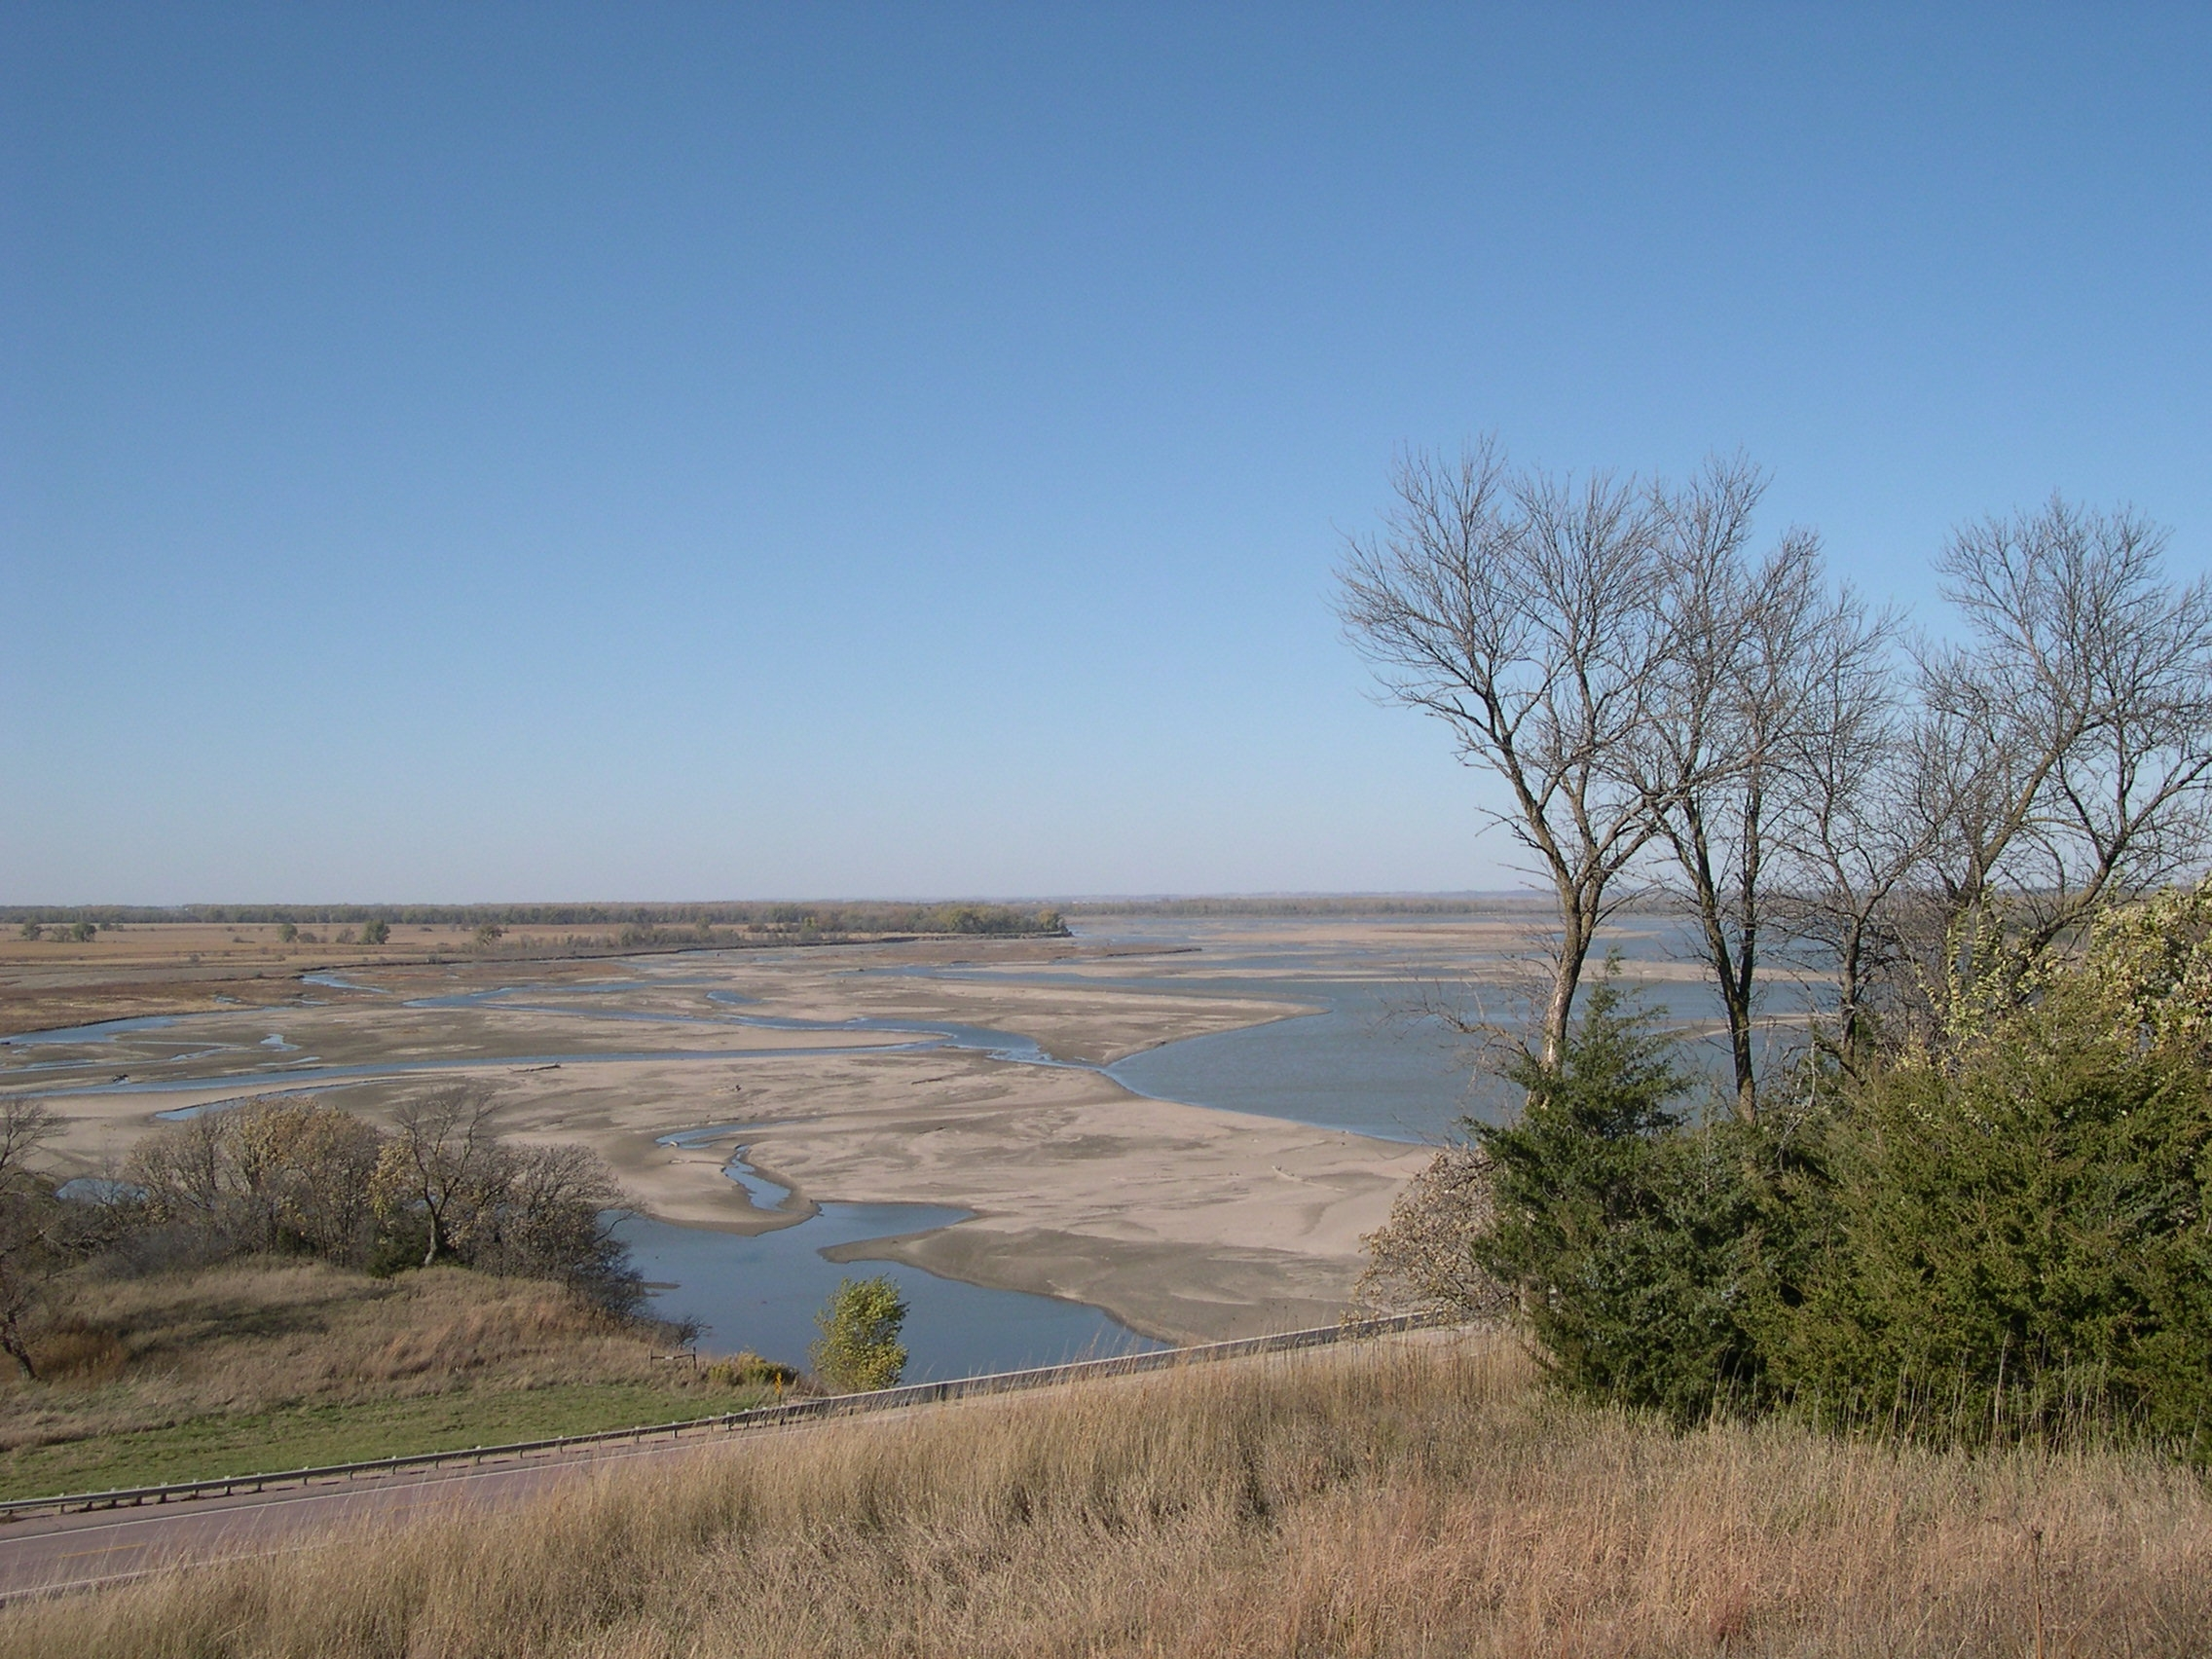 View of the river from one of the overlooks